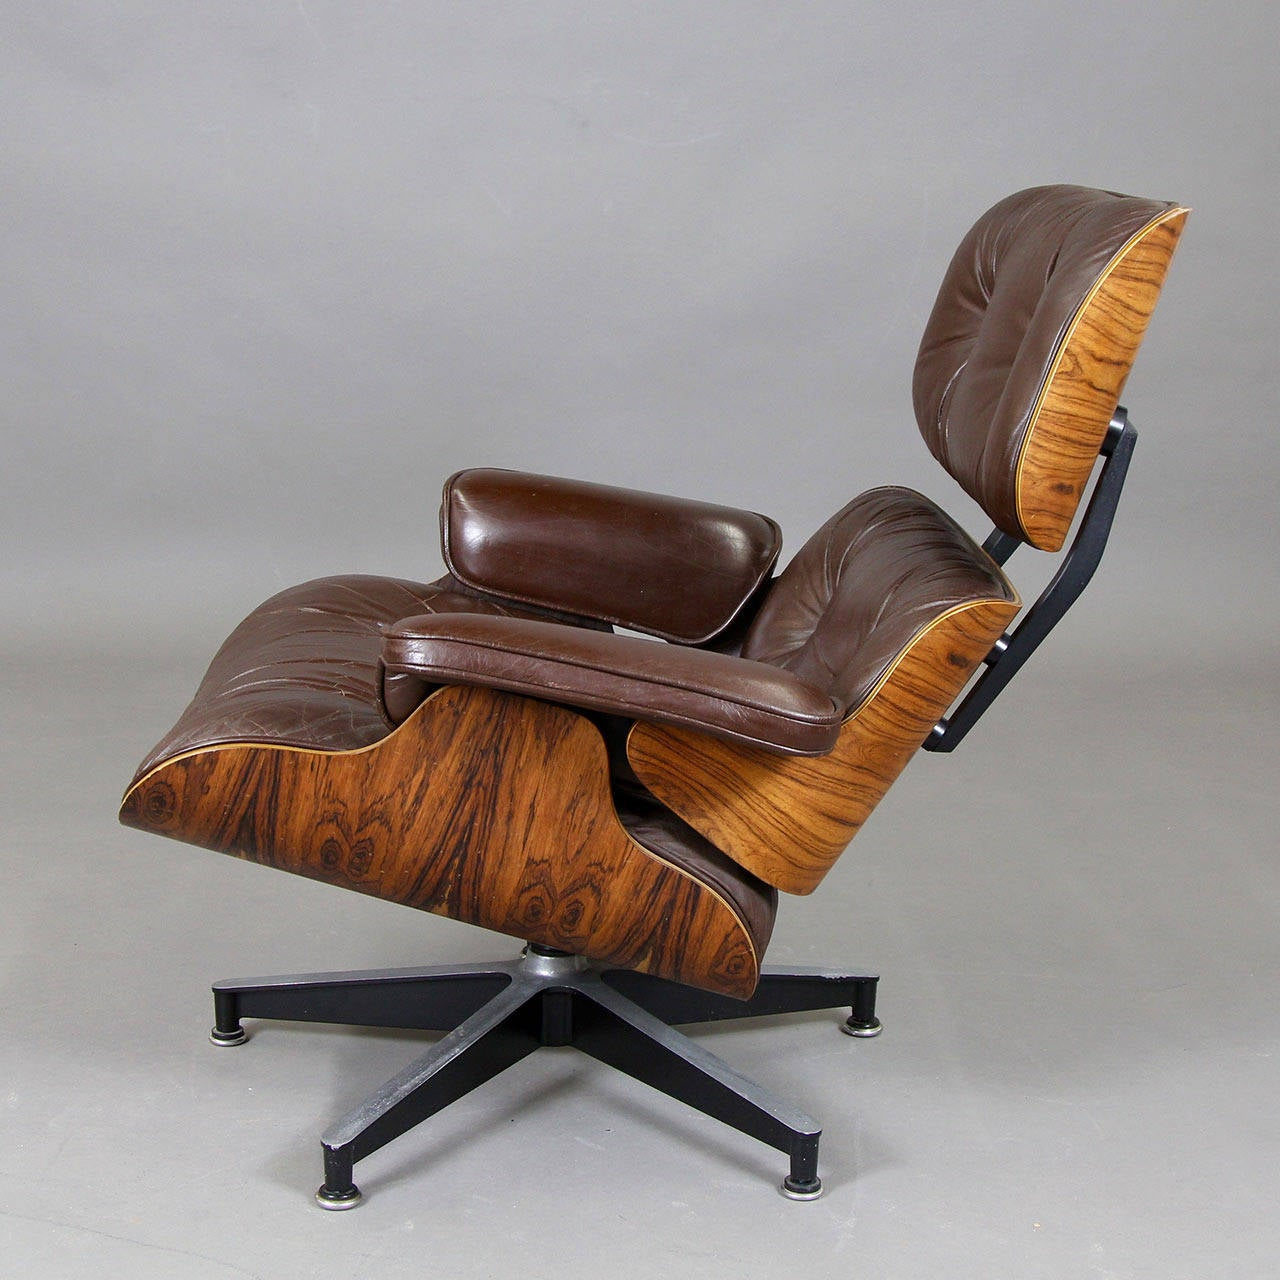 Iconic 670 herman miller eames lounge chair at 1stdibs Iconic eames chair